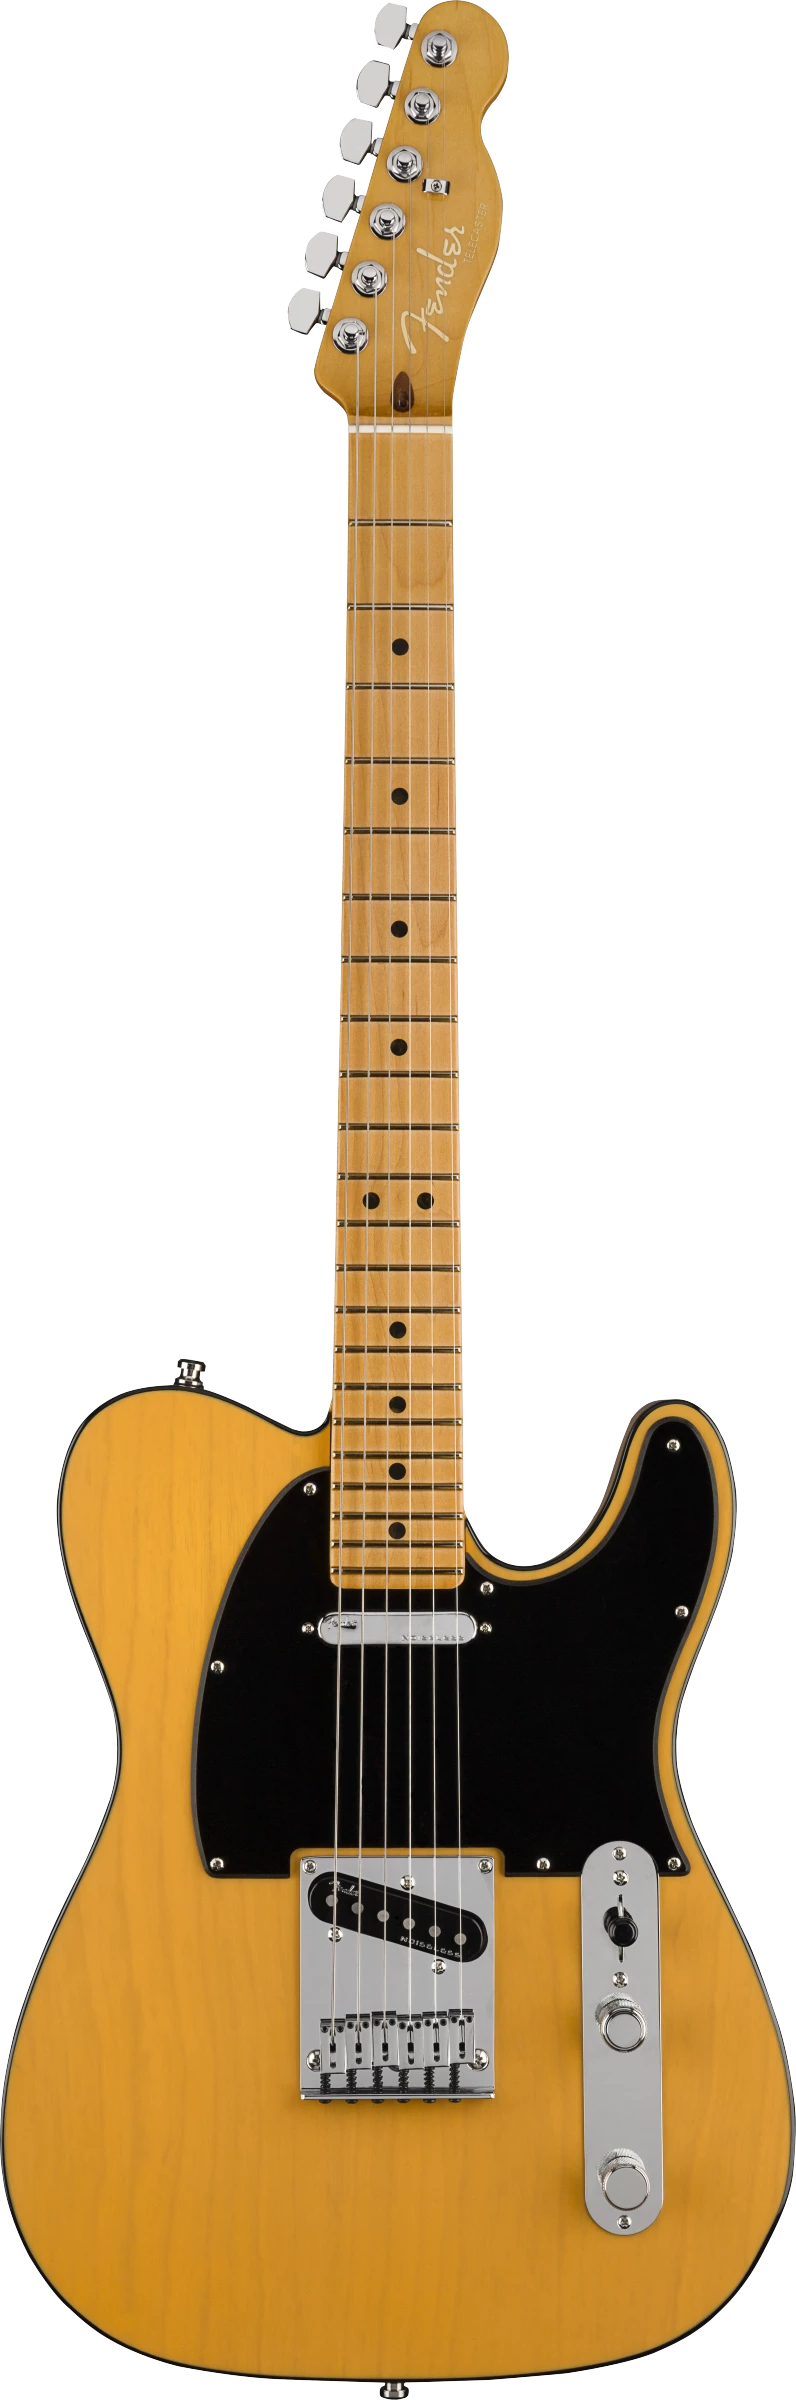 Fender American Ultra Telecaster Butterscotch Blonde MN - Regent Sounds